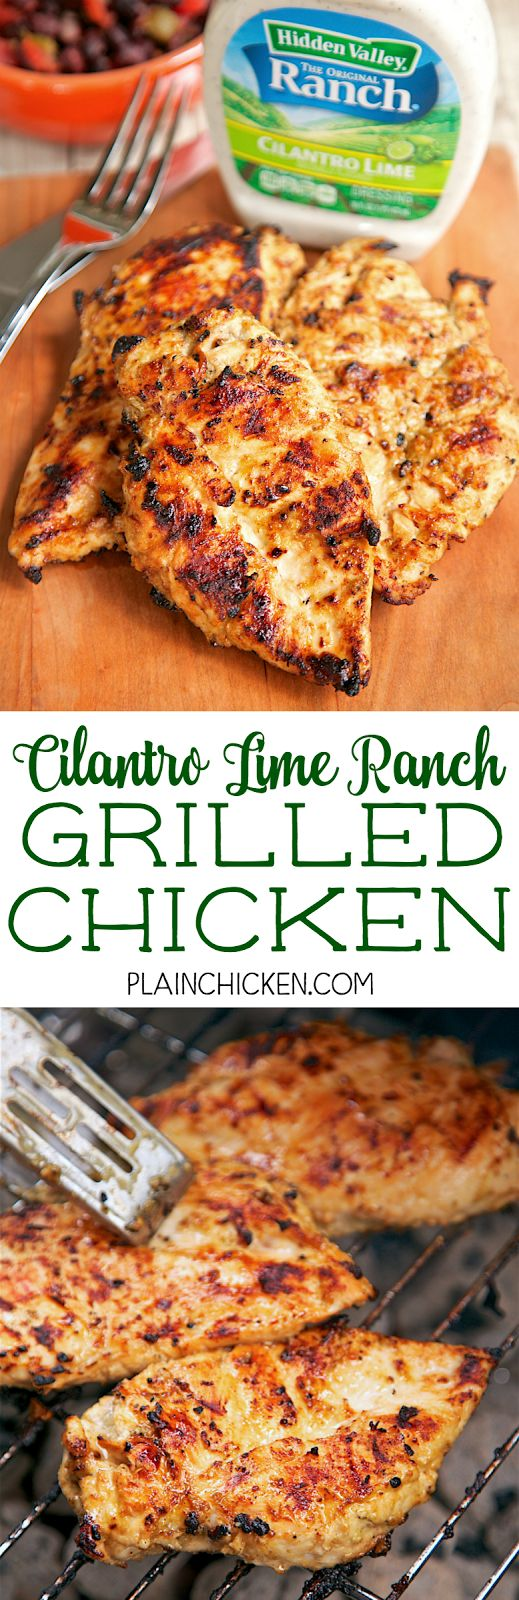 Cilantro Lime Ranch Grilled Chicken - cilantro lime ranch dressing, olive oil, cumin, lime juice, vinegar and worcestershire sauce. Only takes a minute to whisk up the marinade. Let the chicken sit in the marinade all day and grill the chicken for dinner. Crazy good! Would also be great in fajitas!!